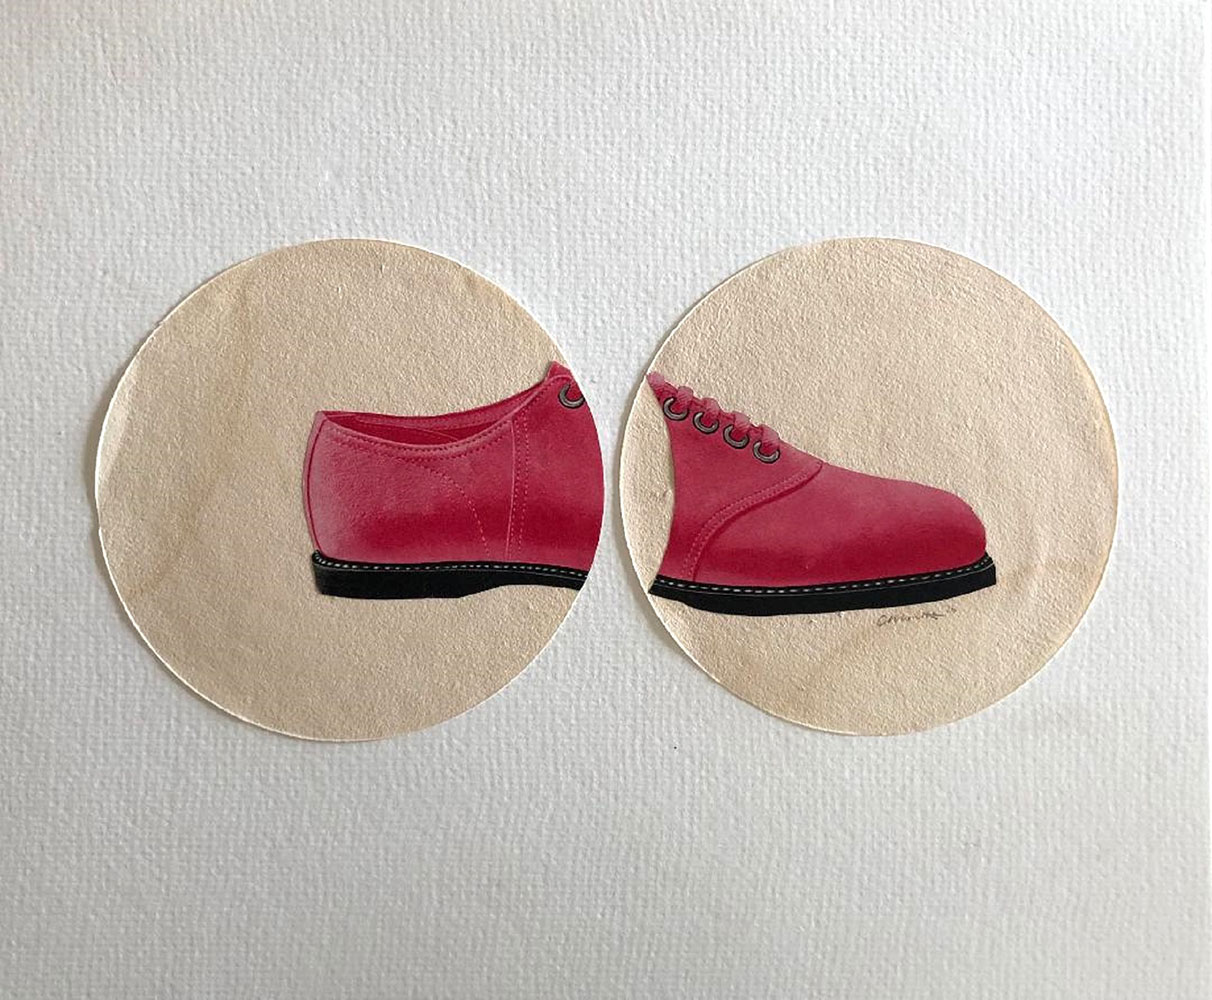 """Colleen Monette, Pink Shoe, 2020, Collage on paper, 10"""" x 12"""", $100 retail"""